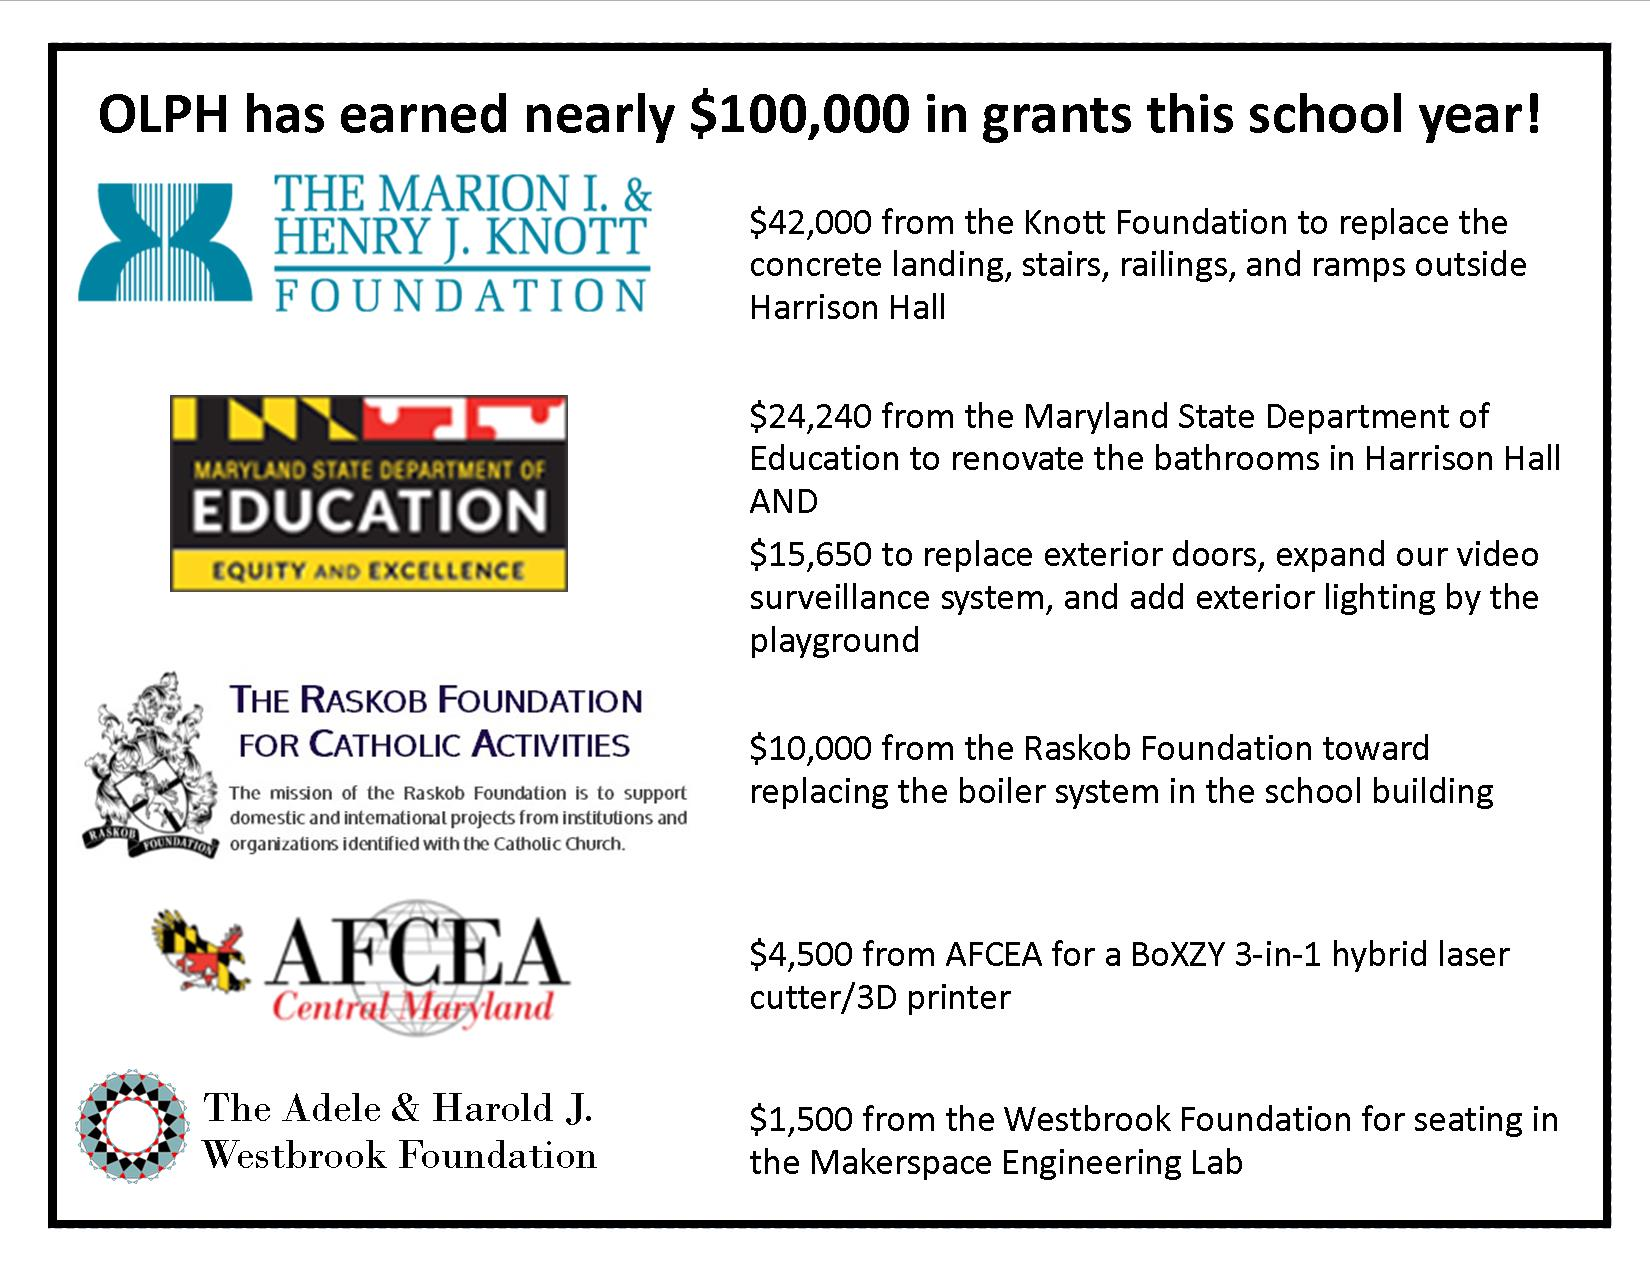 OLPH Has Earned Nearly $100,000 in Grants this School Year!